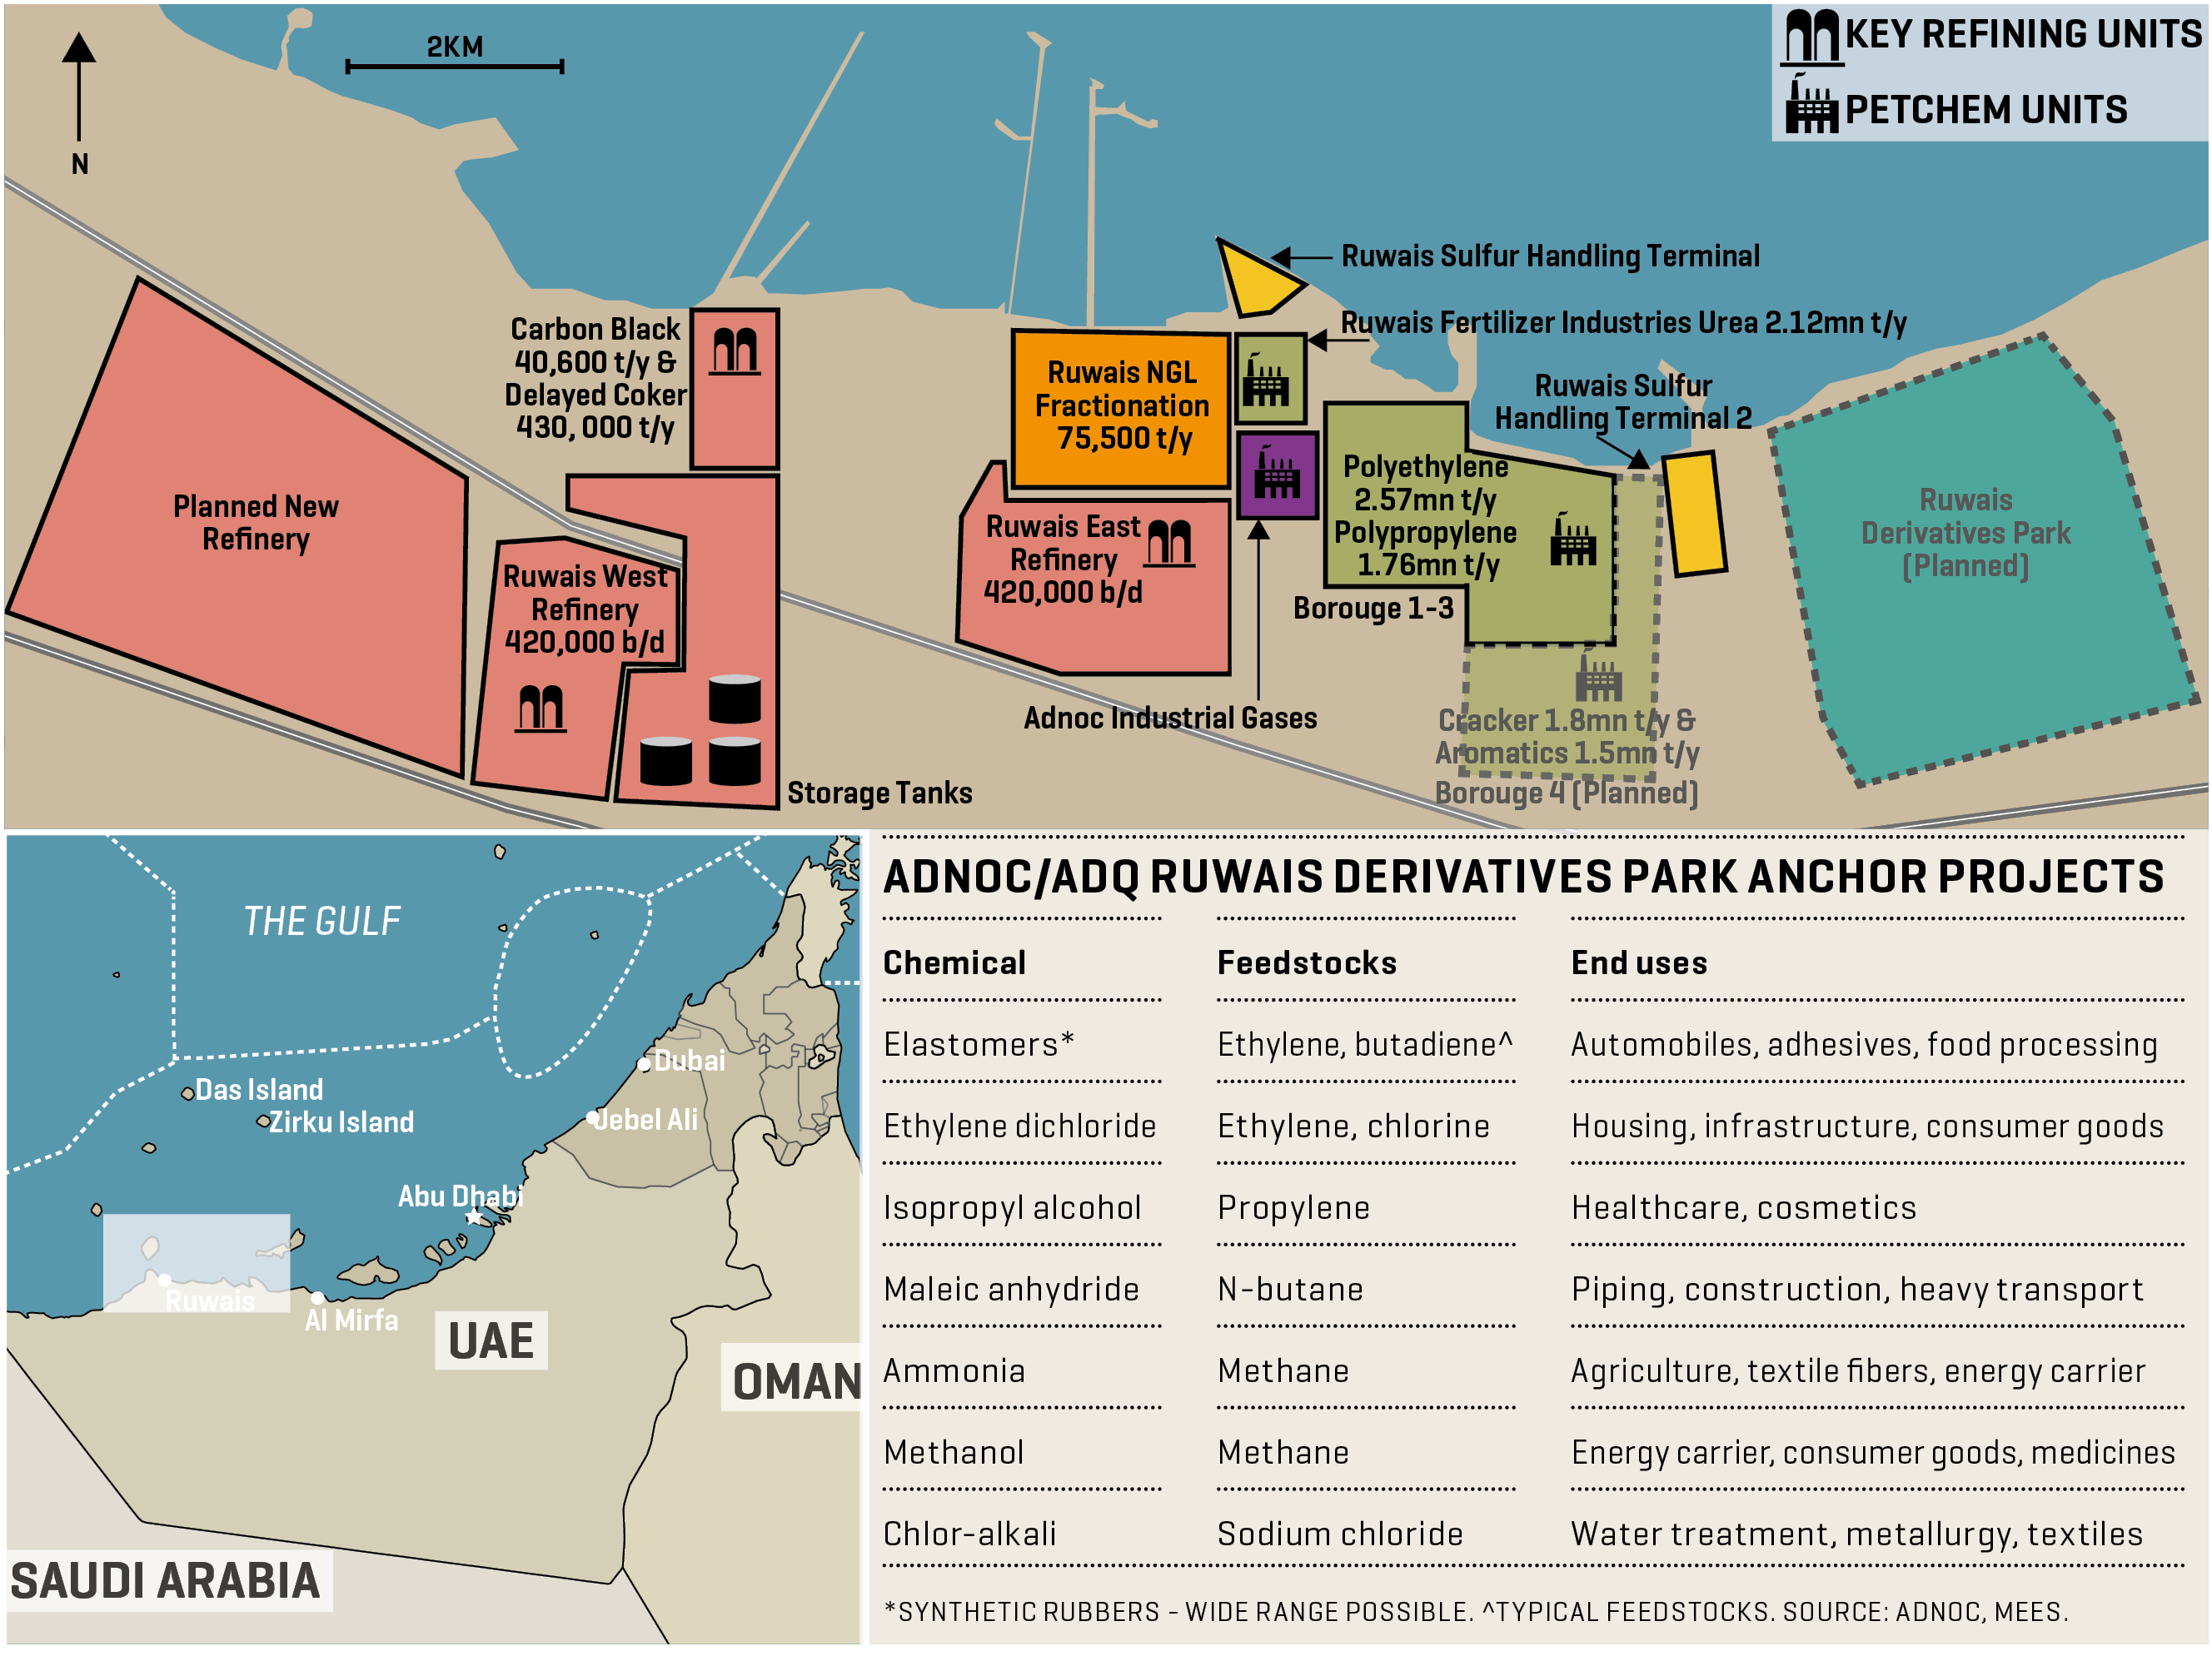 Adnoc Downstream Facilities At Ruwais With Nearby Planned Derivatives Park